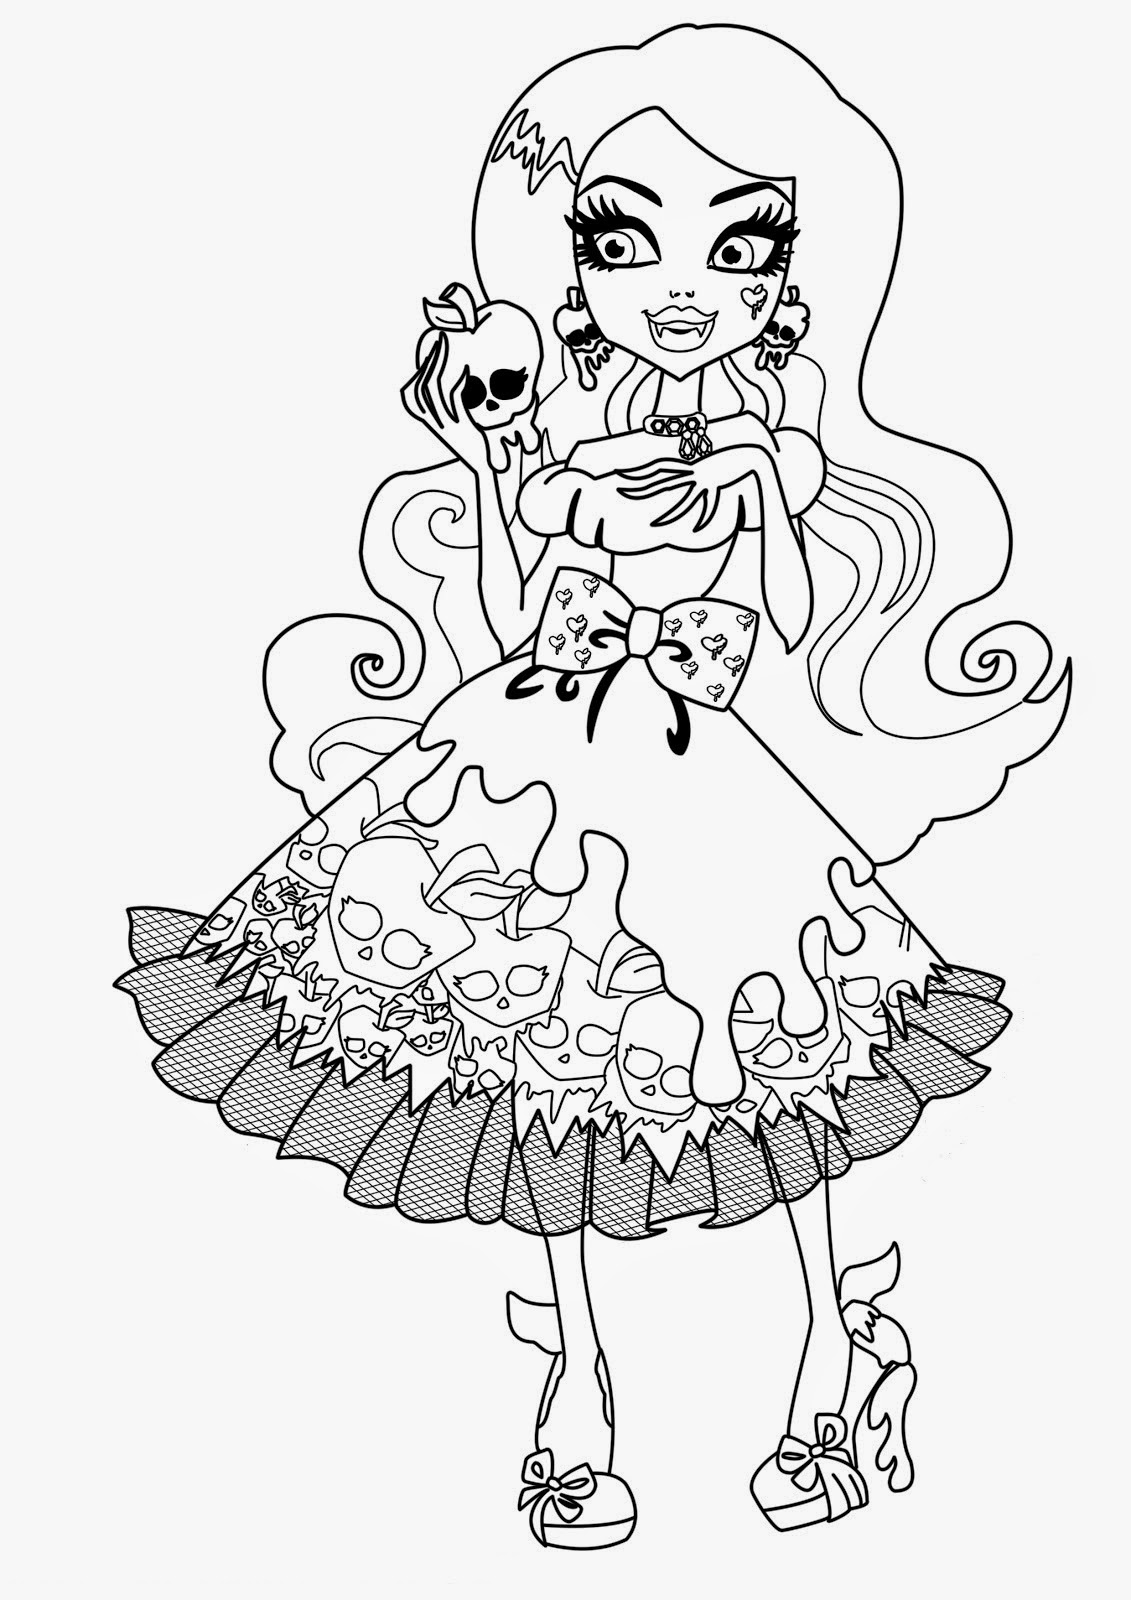 monster high pictures to print and colour monster high coloring pages avea trotter google search pictures print and monster to colour high